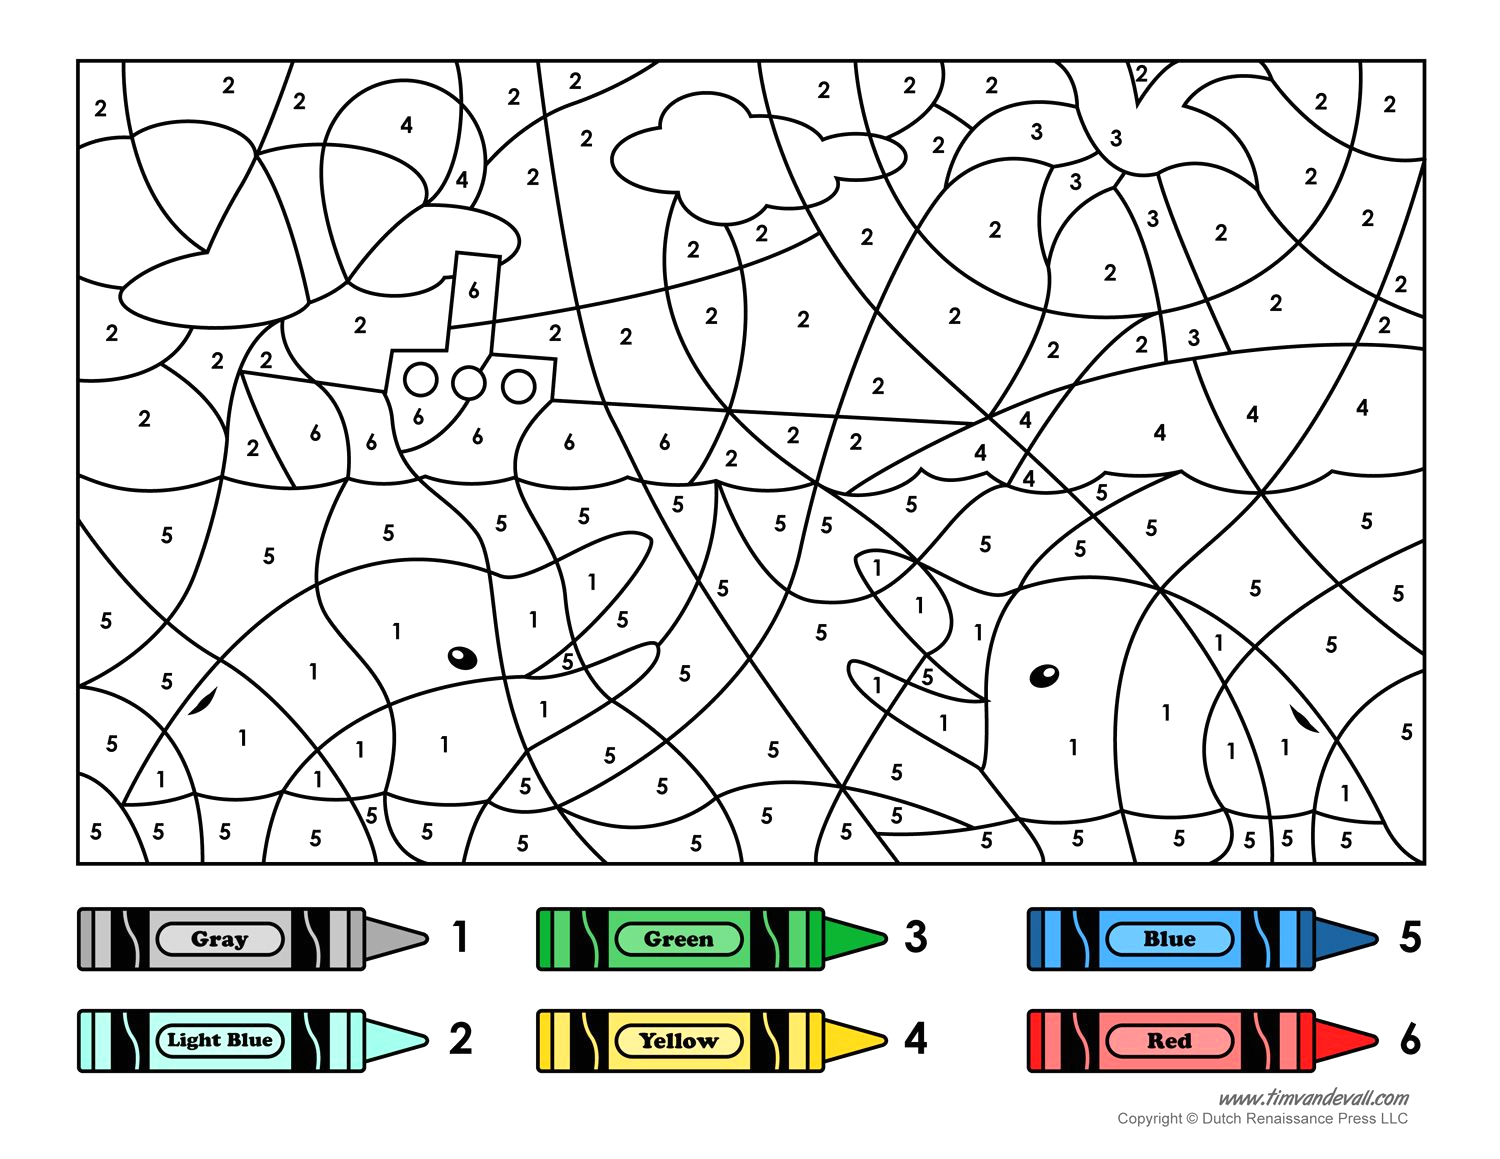 Free Online Color by Number Coloring Pages Color by Number Printable